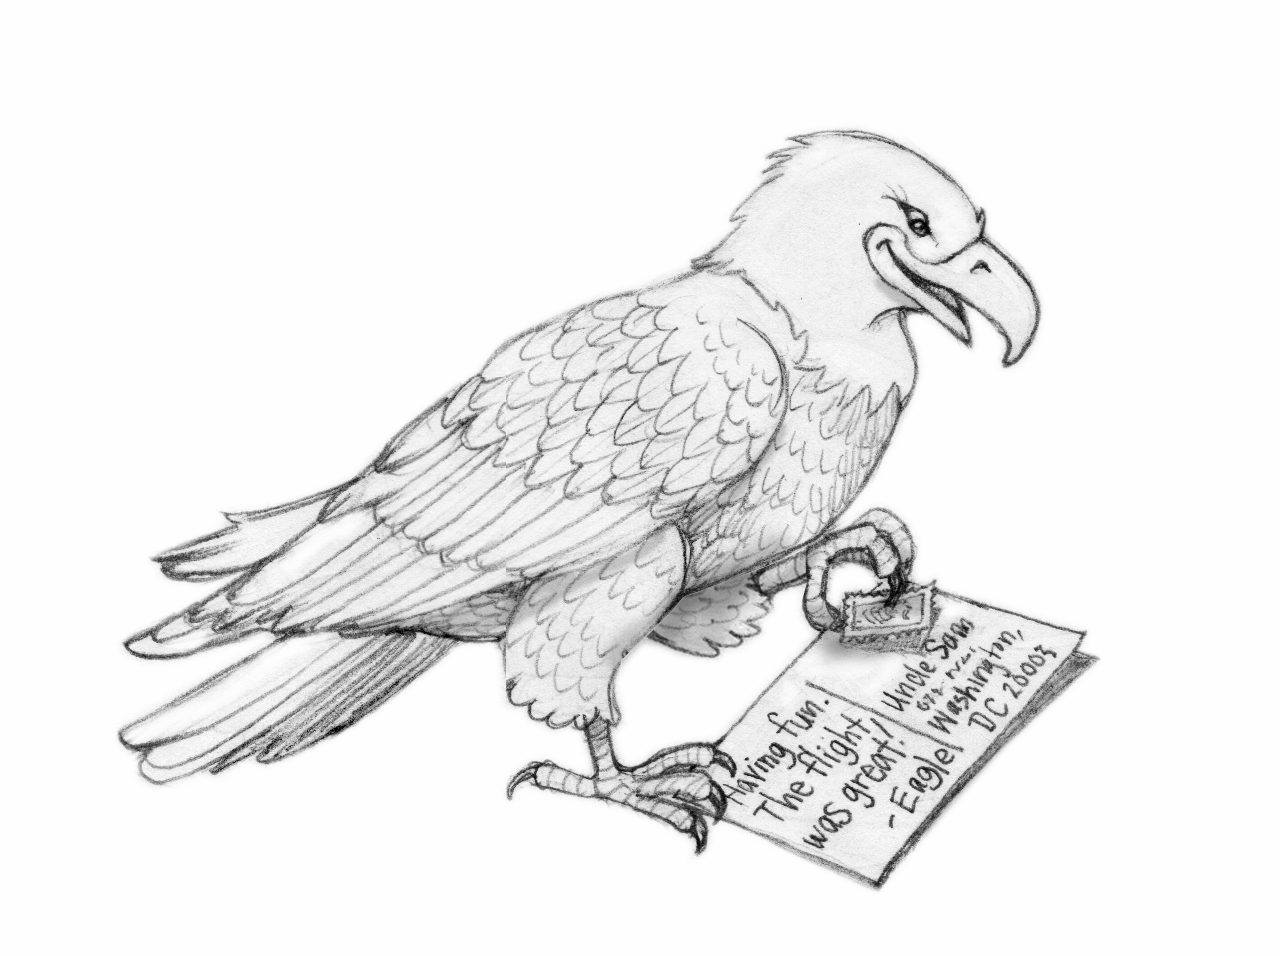 soaring eagle drawing soaring eagle sketch illustration